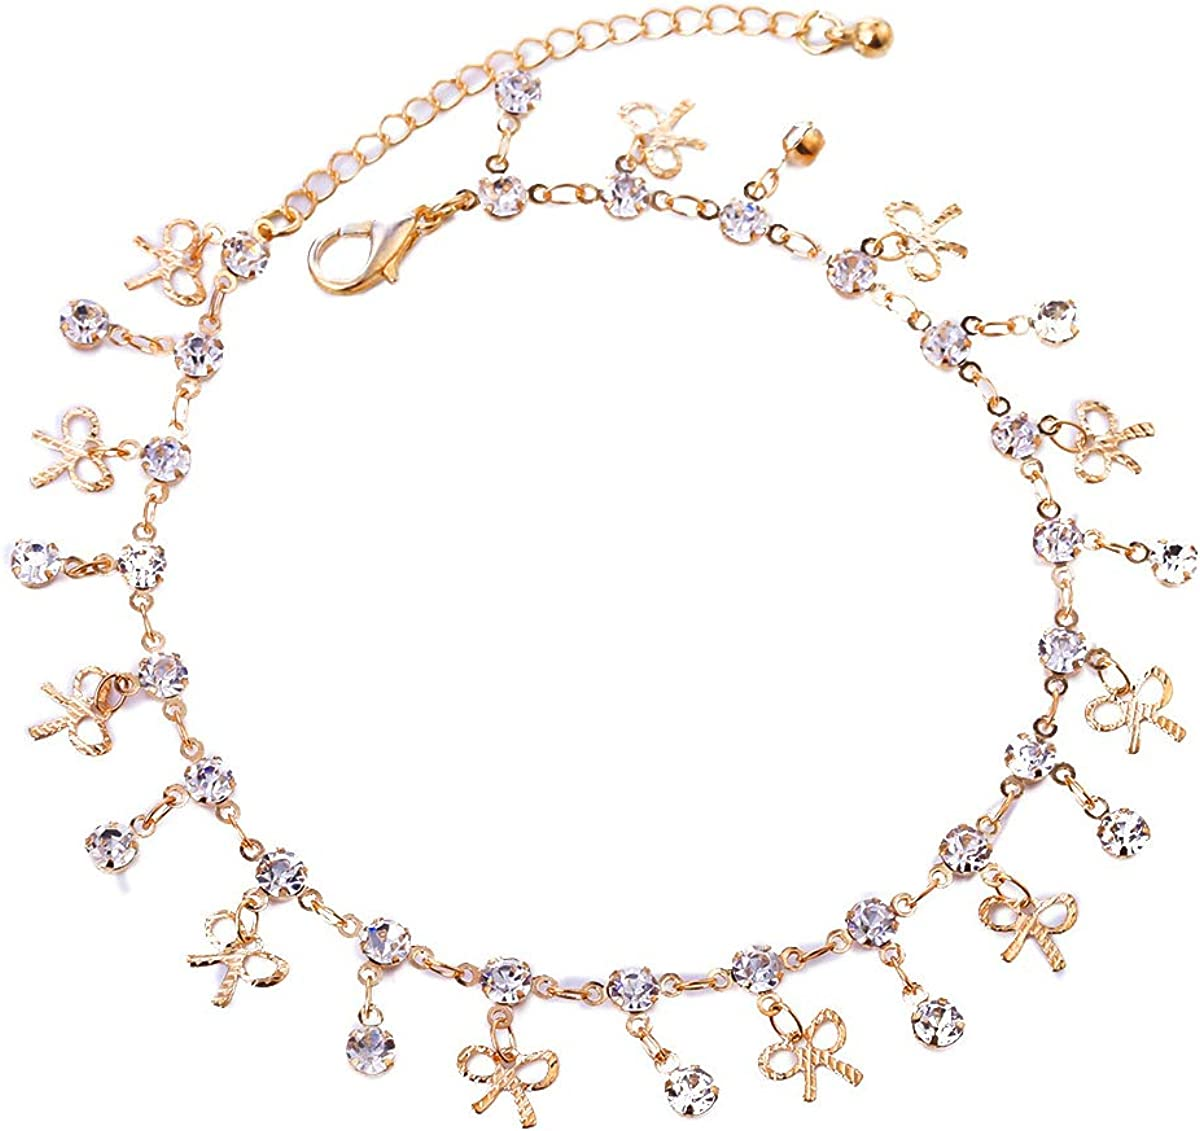 YOOE Geometric Circular Zircon Crystal Bowknot Tassels Anklet,Summer Beach Hollowing Handmade Bowknot Ankle Chain for Women Girls Birthday Gifts